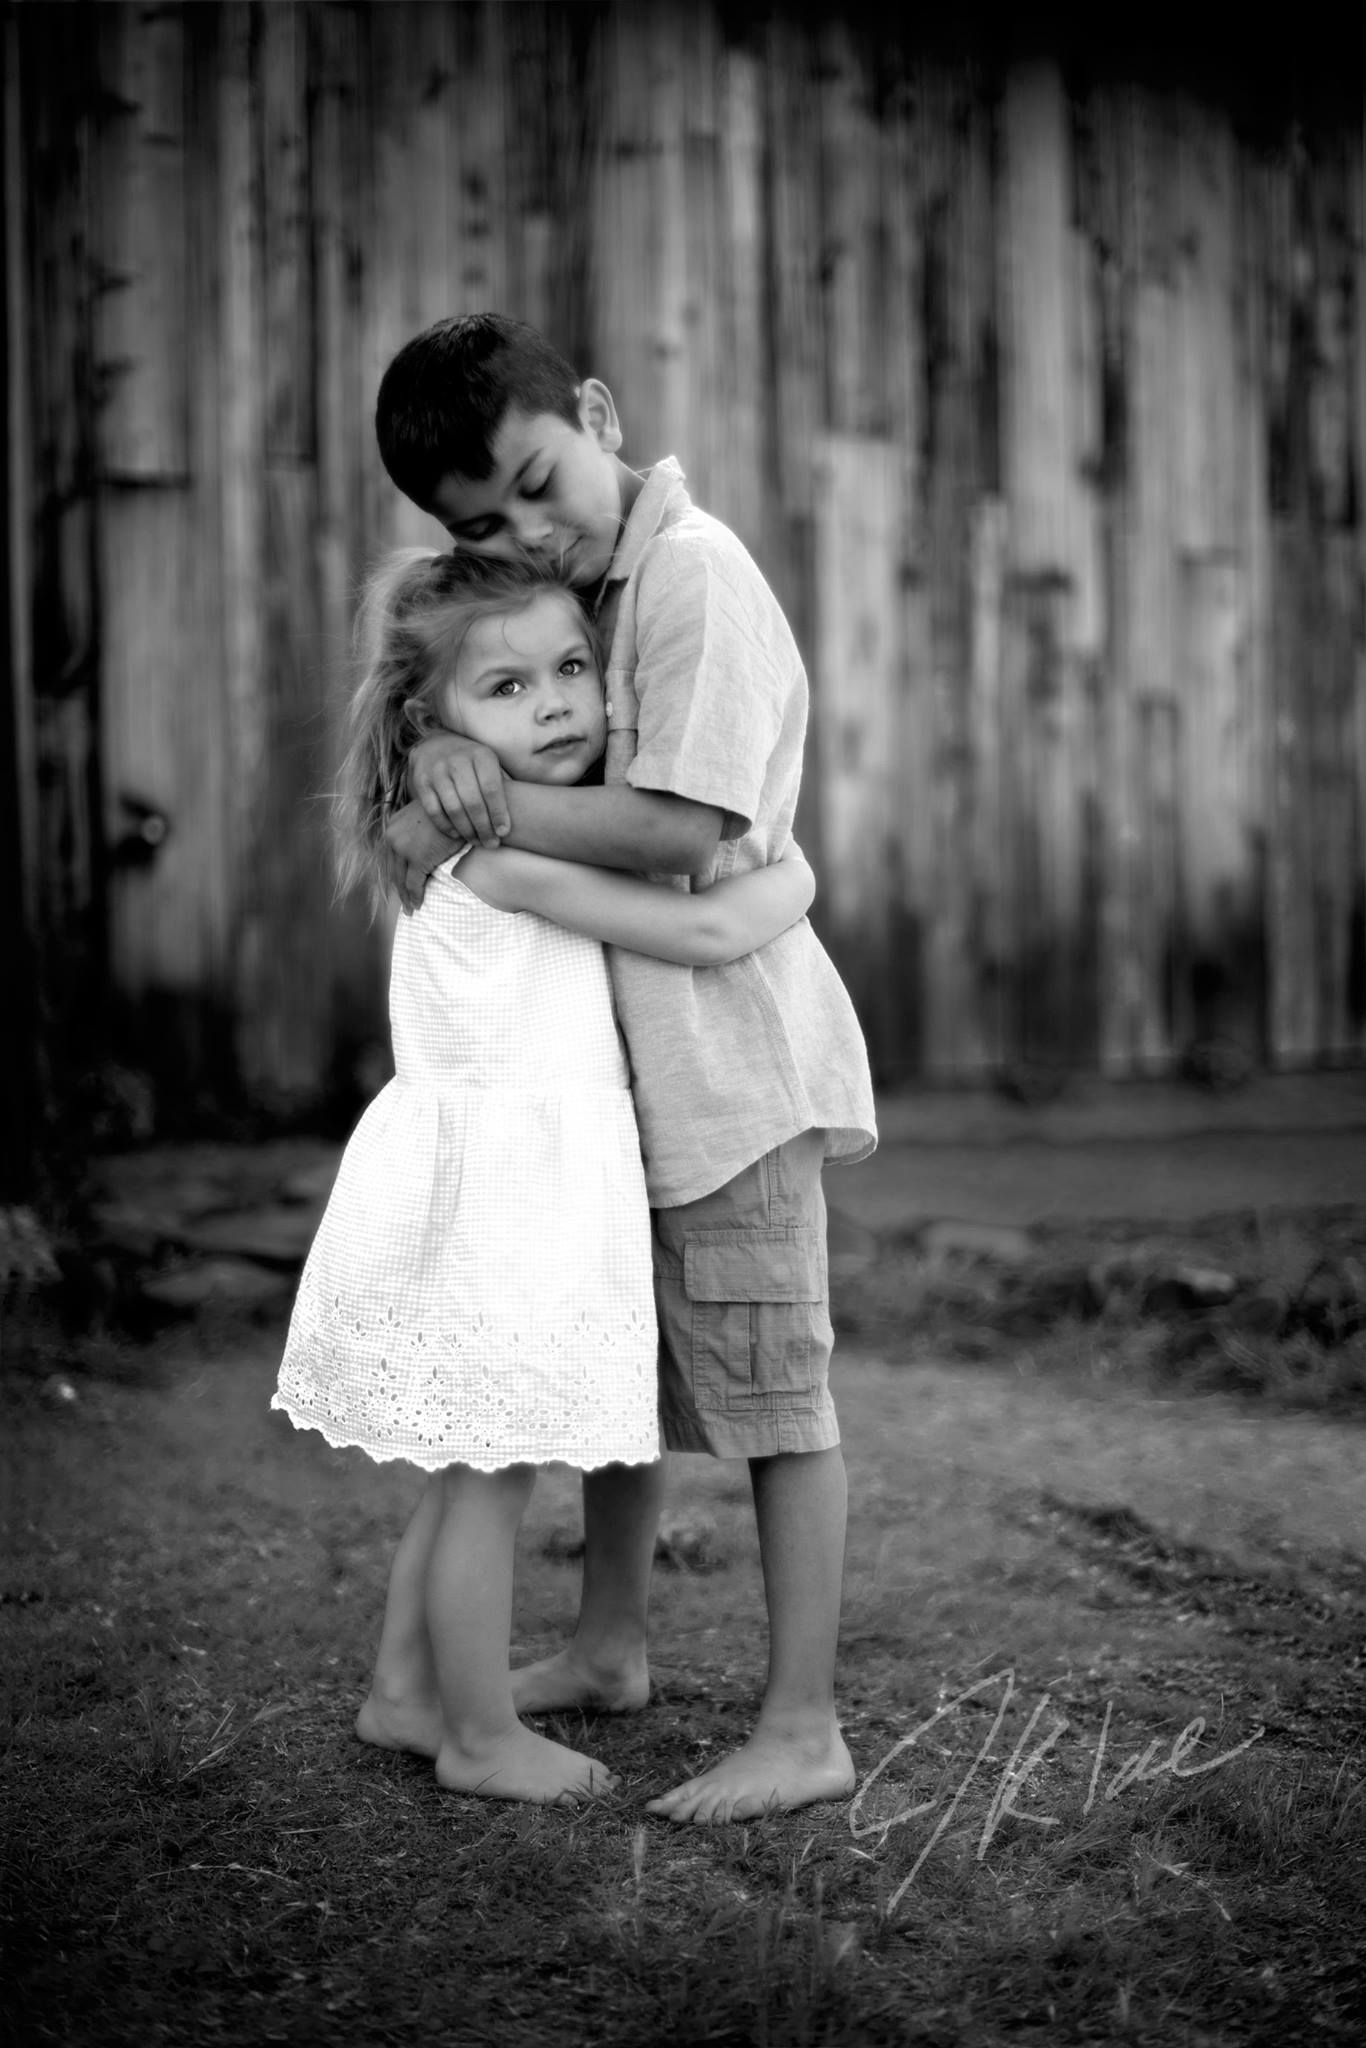 Frisco Texas Kids Photoshoot in Black and White with Brother and Sister hugging near barn